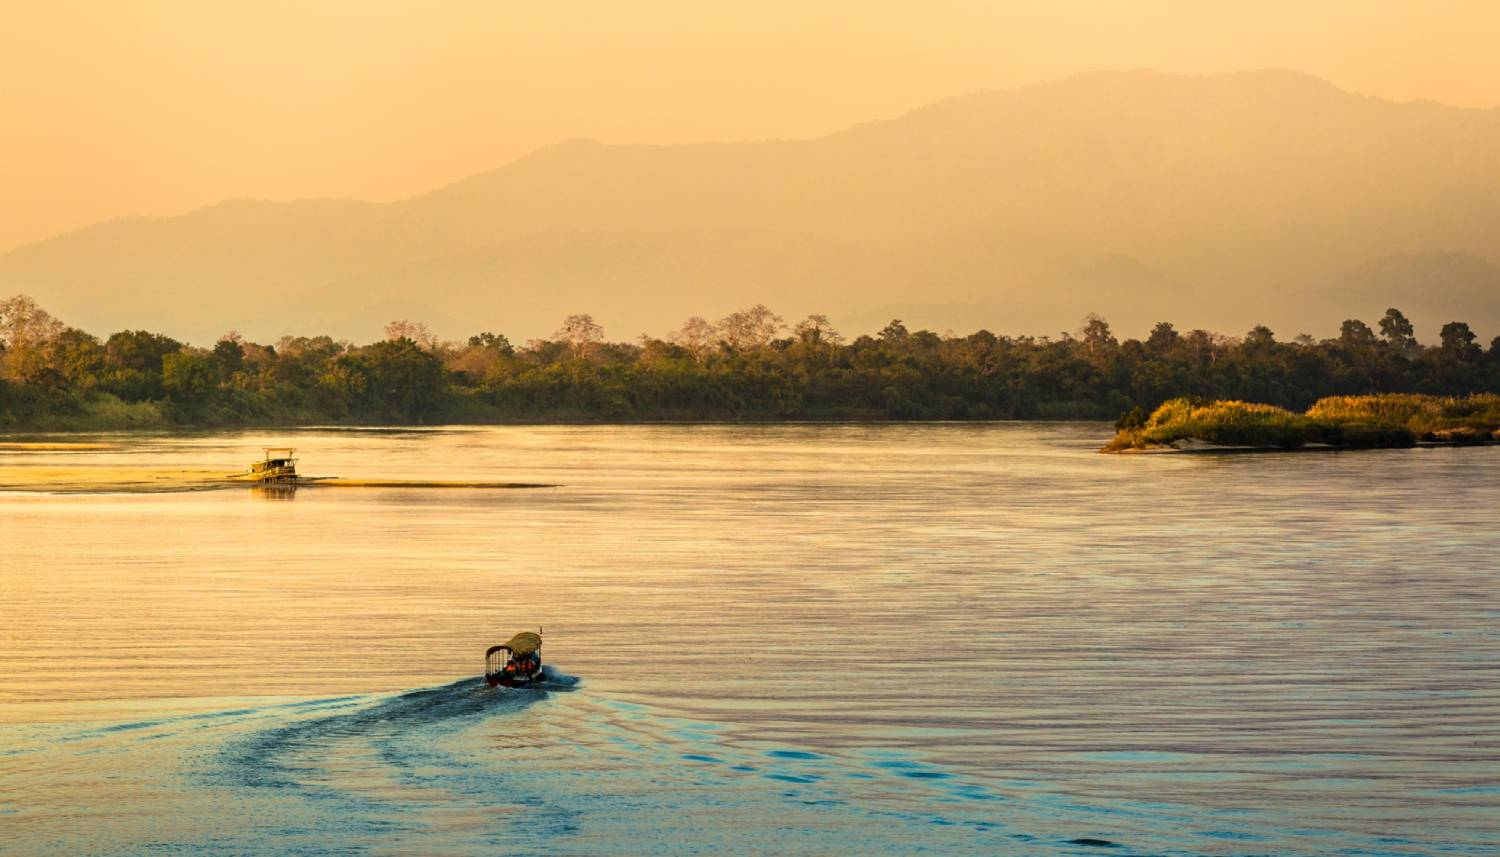 The Golden Triangle - Things To Do In Chiang Mai